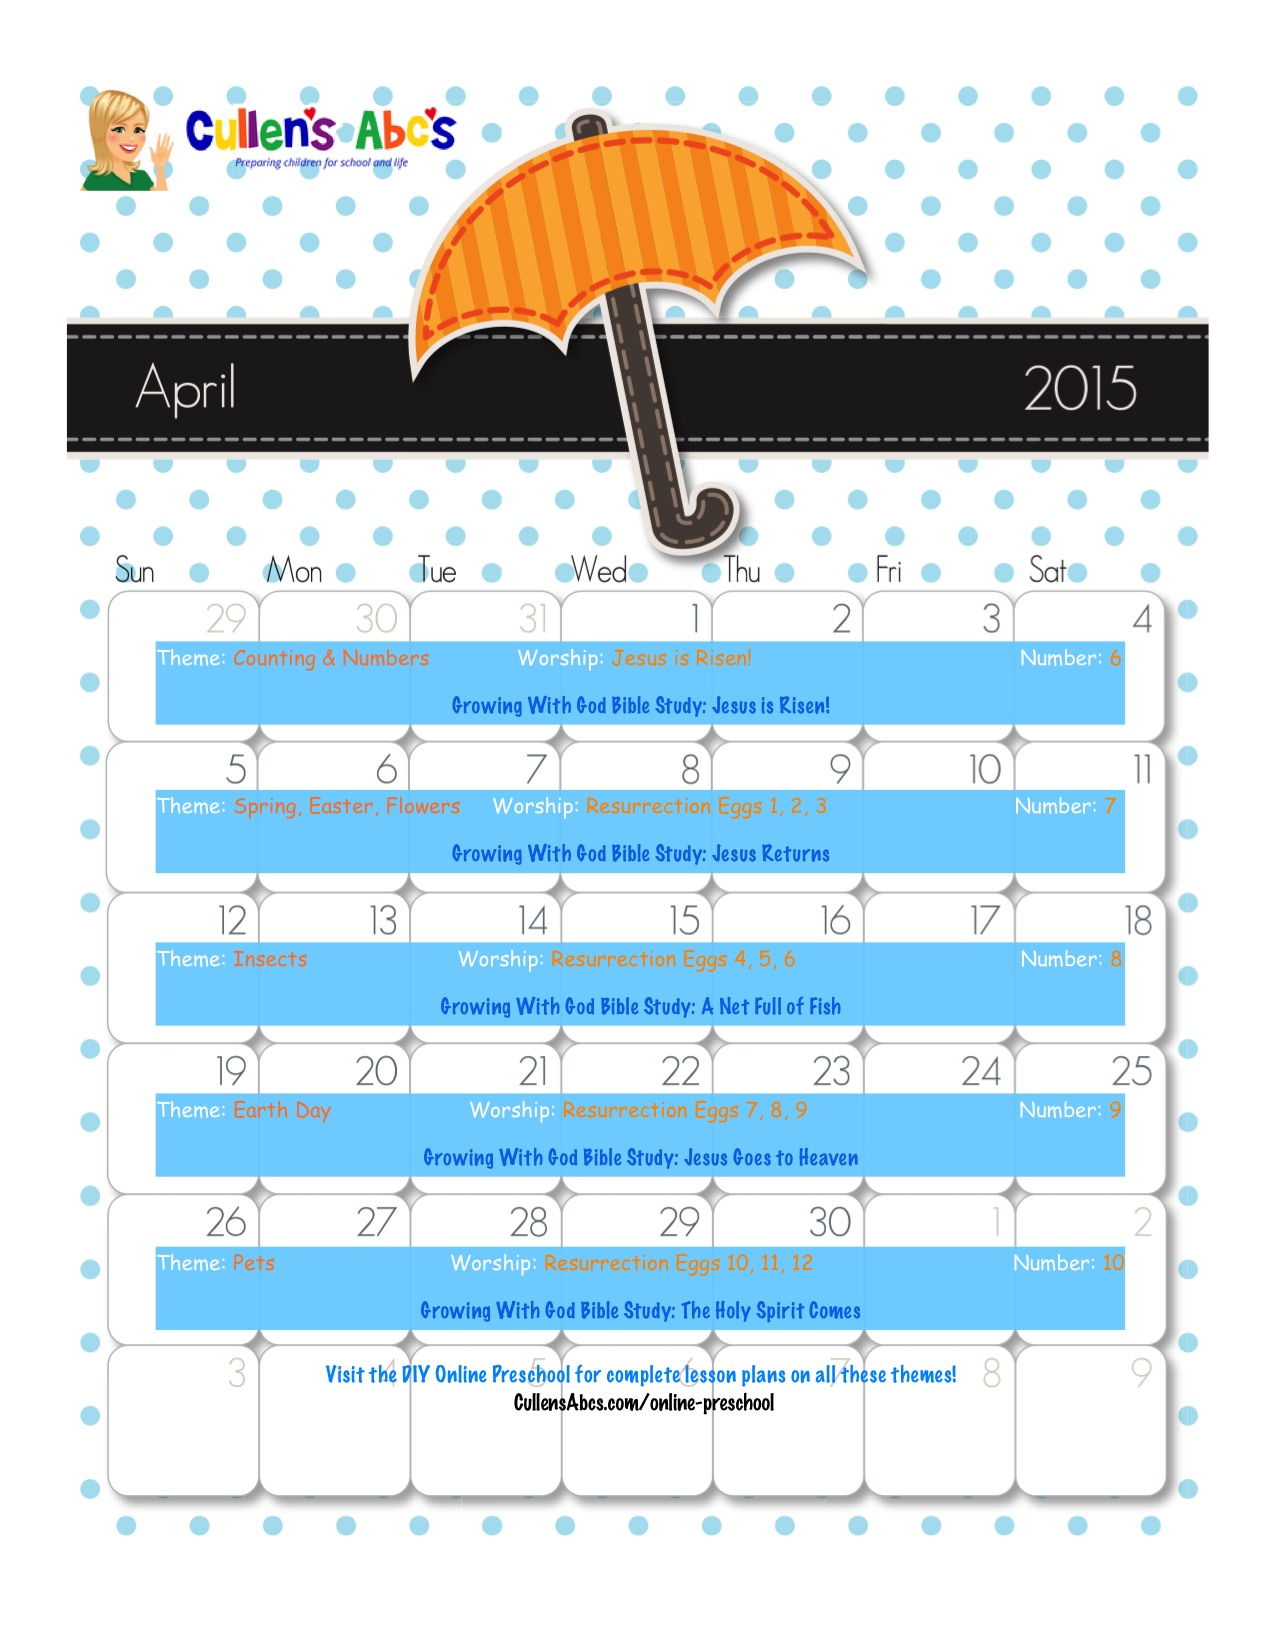 April Online Preschool Calendar 2015